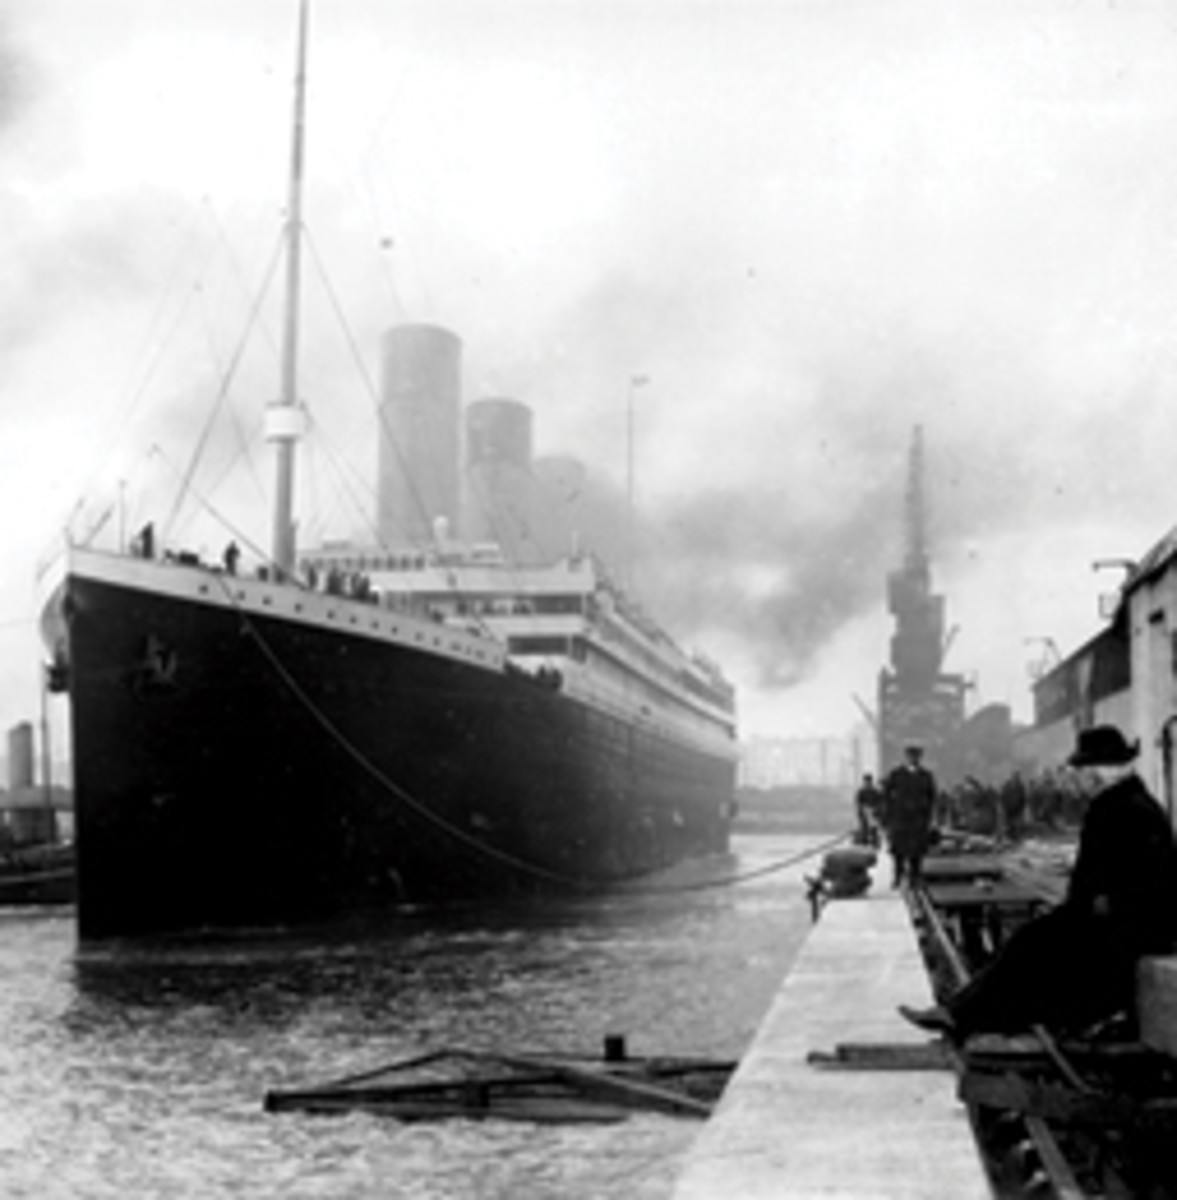 The Titanic exhibit offers new insight into the 1912 sinking.